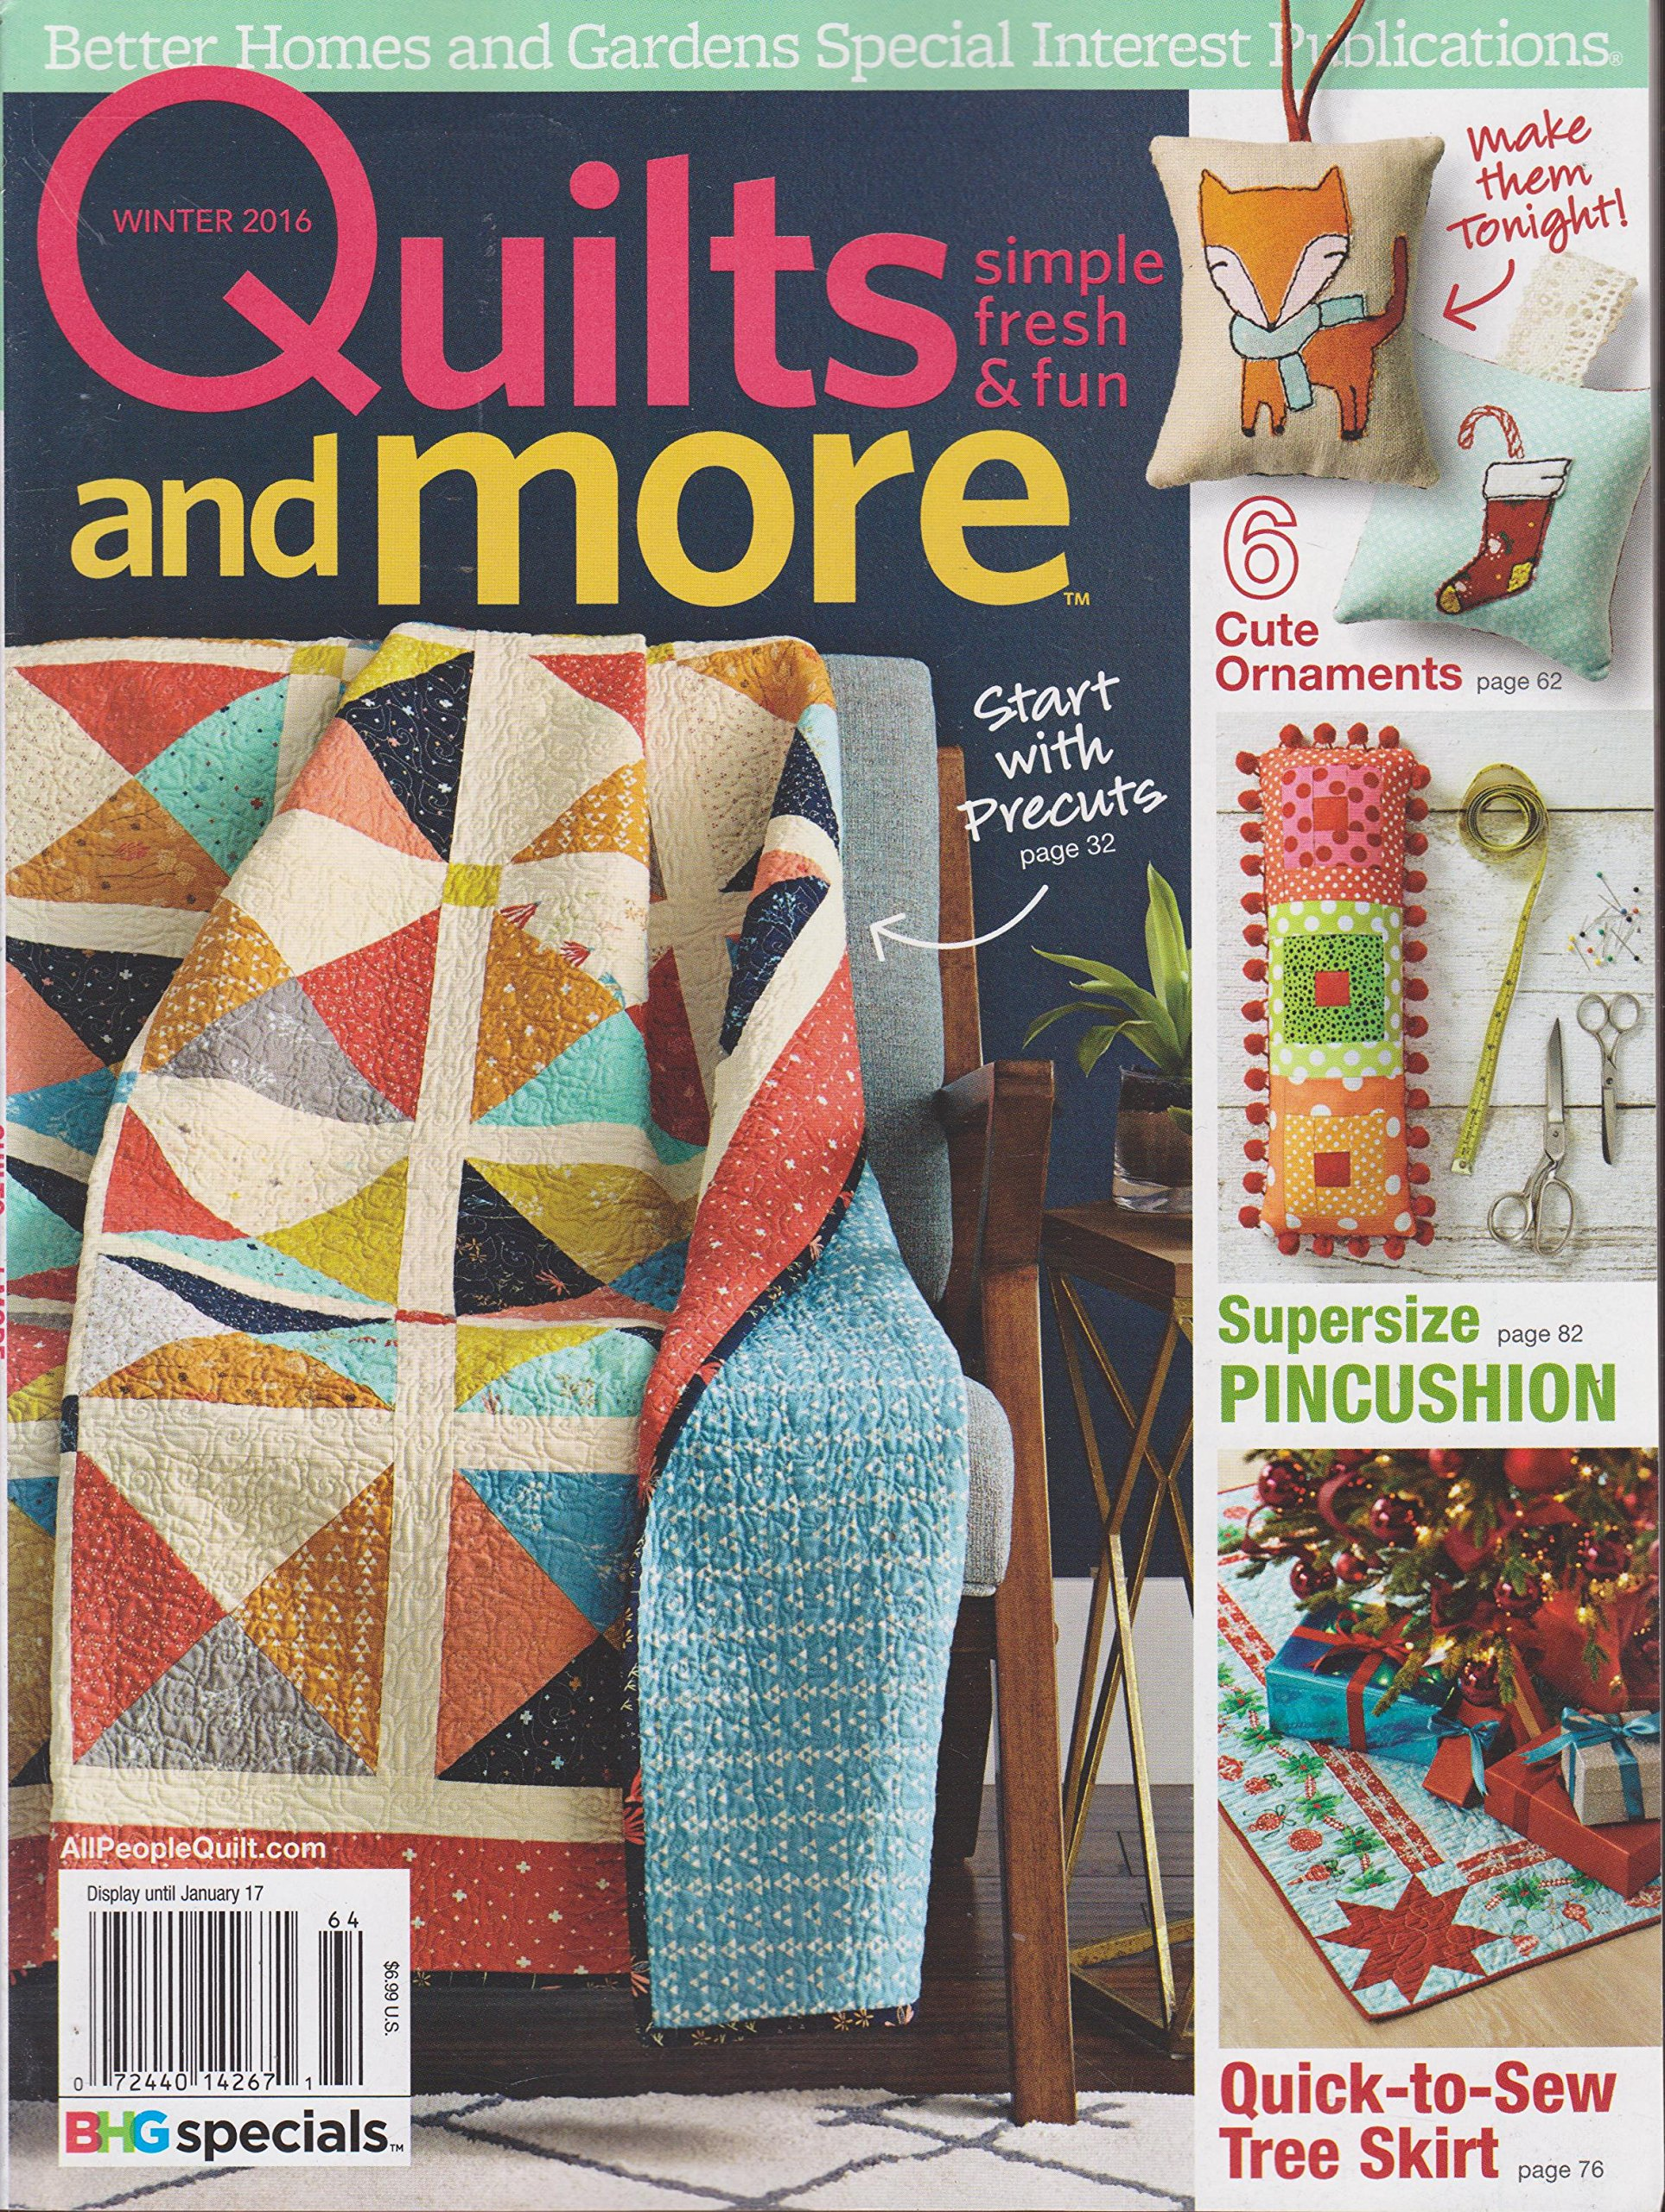 Download Better Homes and Gardens Quilts and More Magazine Winter 2016 ebook